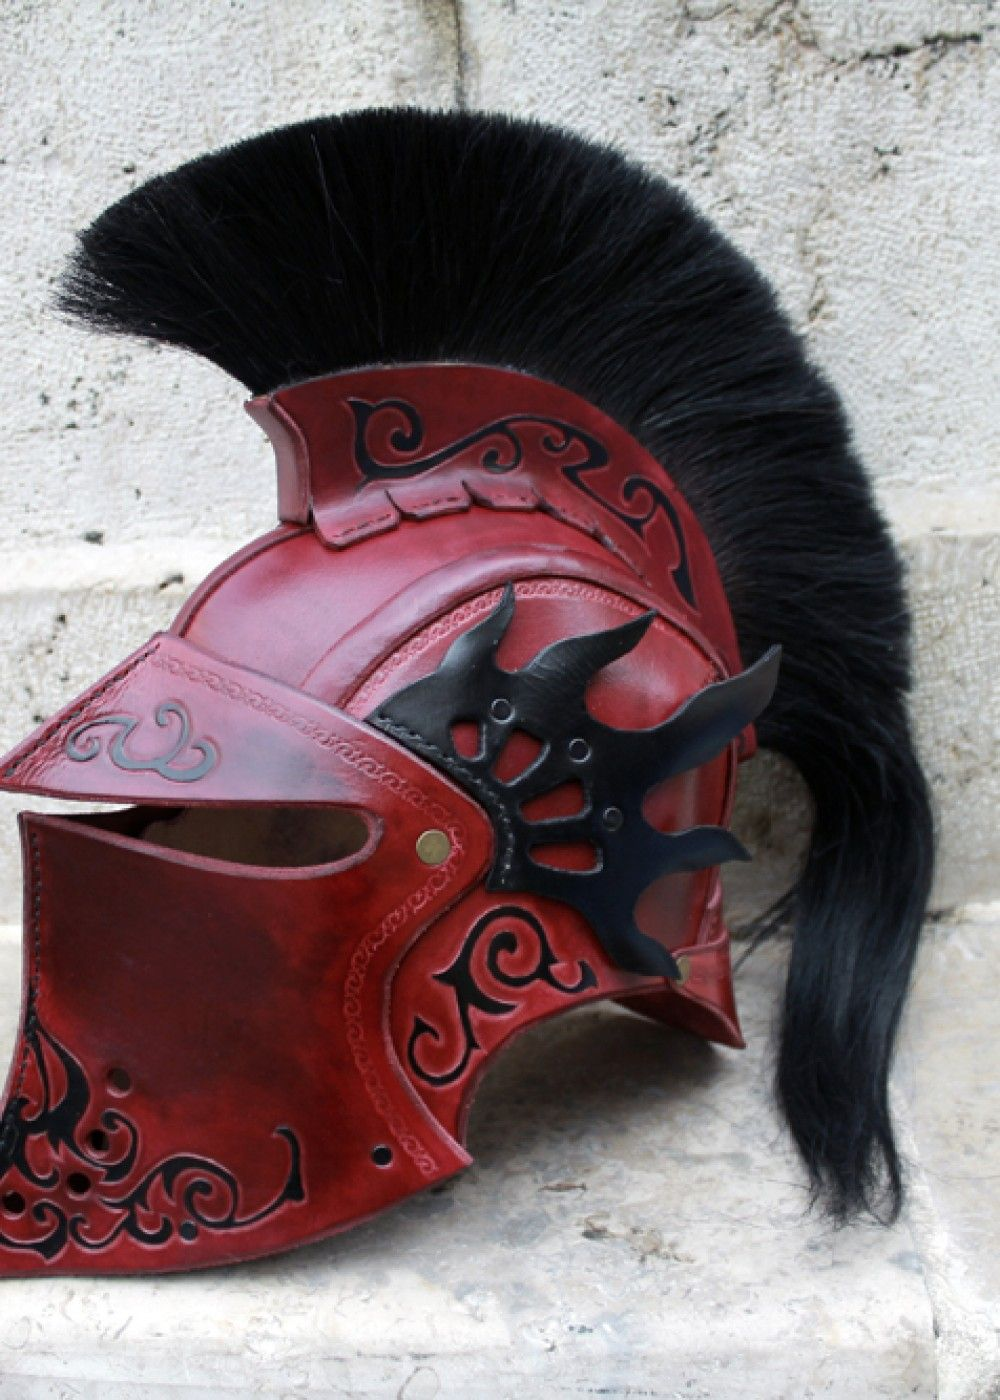 Popular Dragon Age: Inquisition Helmet (Inquisitor) for Cosplay | Dragon  NK98